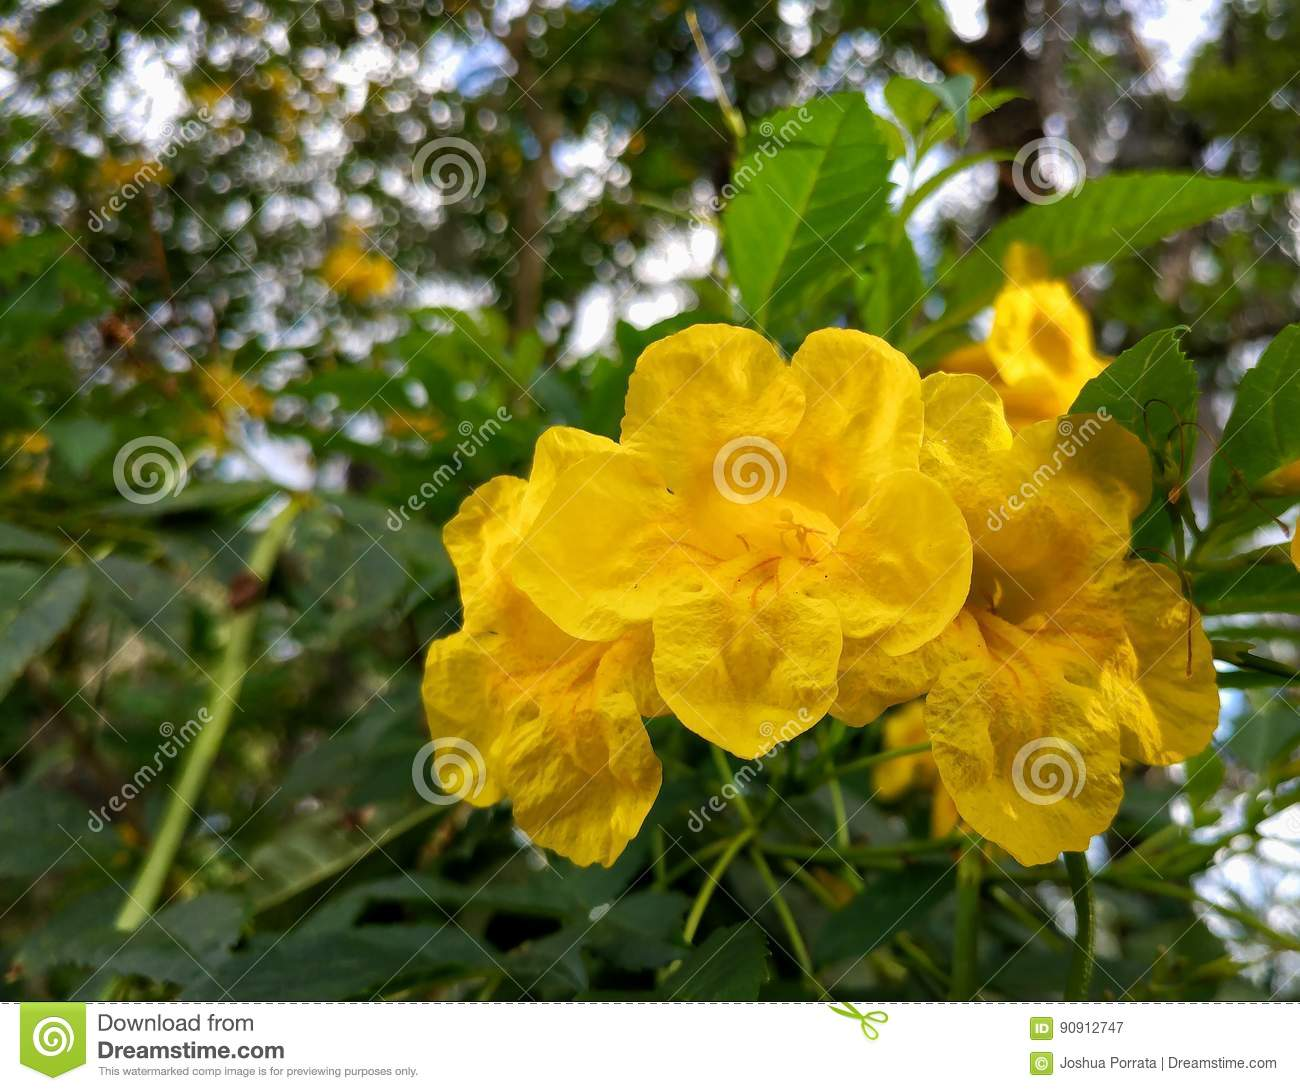 A Cluster Of Imperfect Yellow Florida Flowers Stock Image Image Of